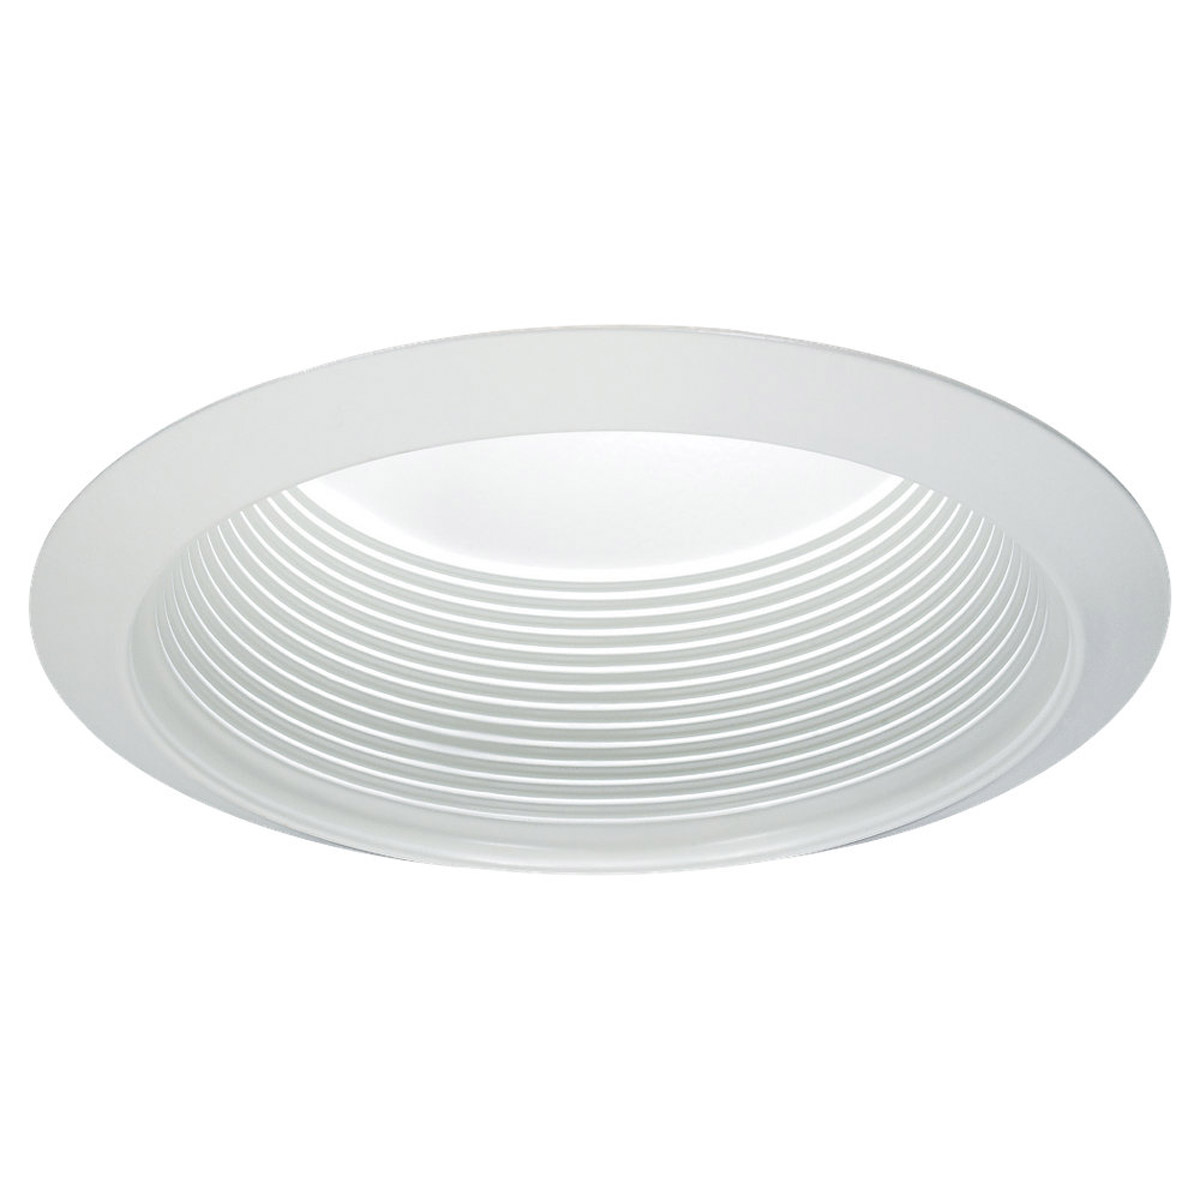 Sea Gull Lighting Signature Recessed Trim Only in White 11151AT-14